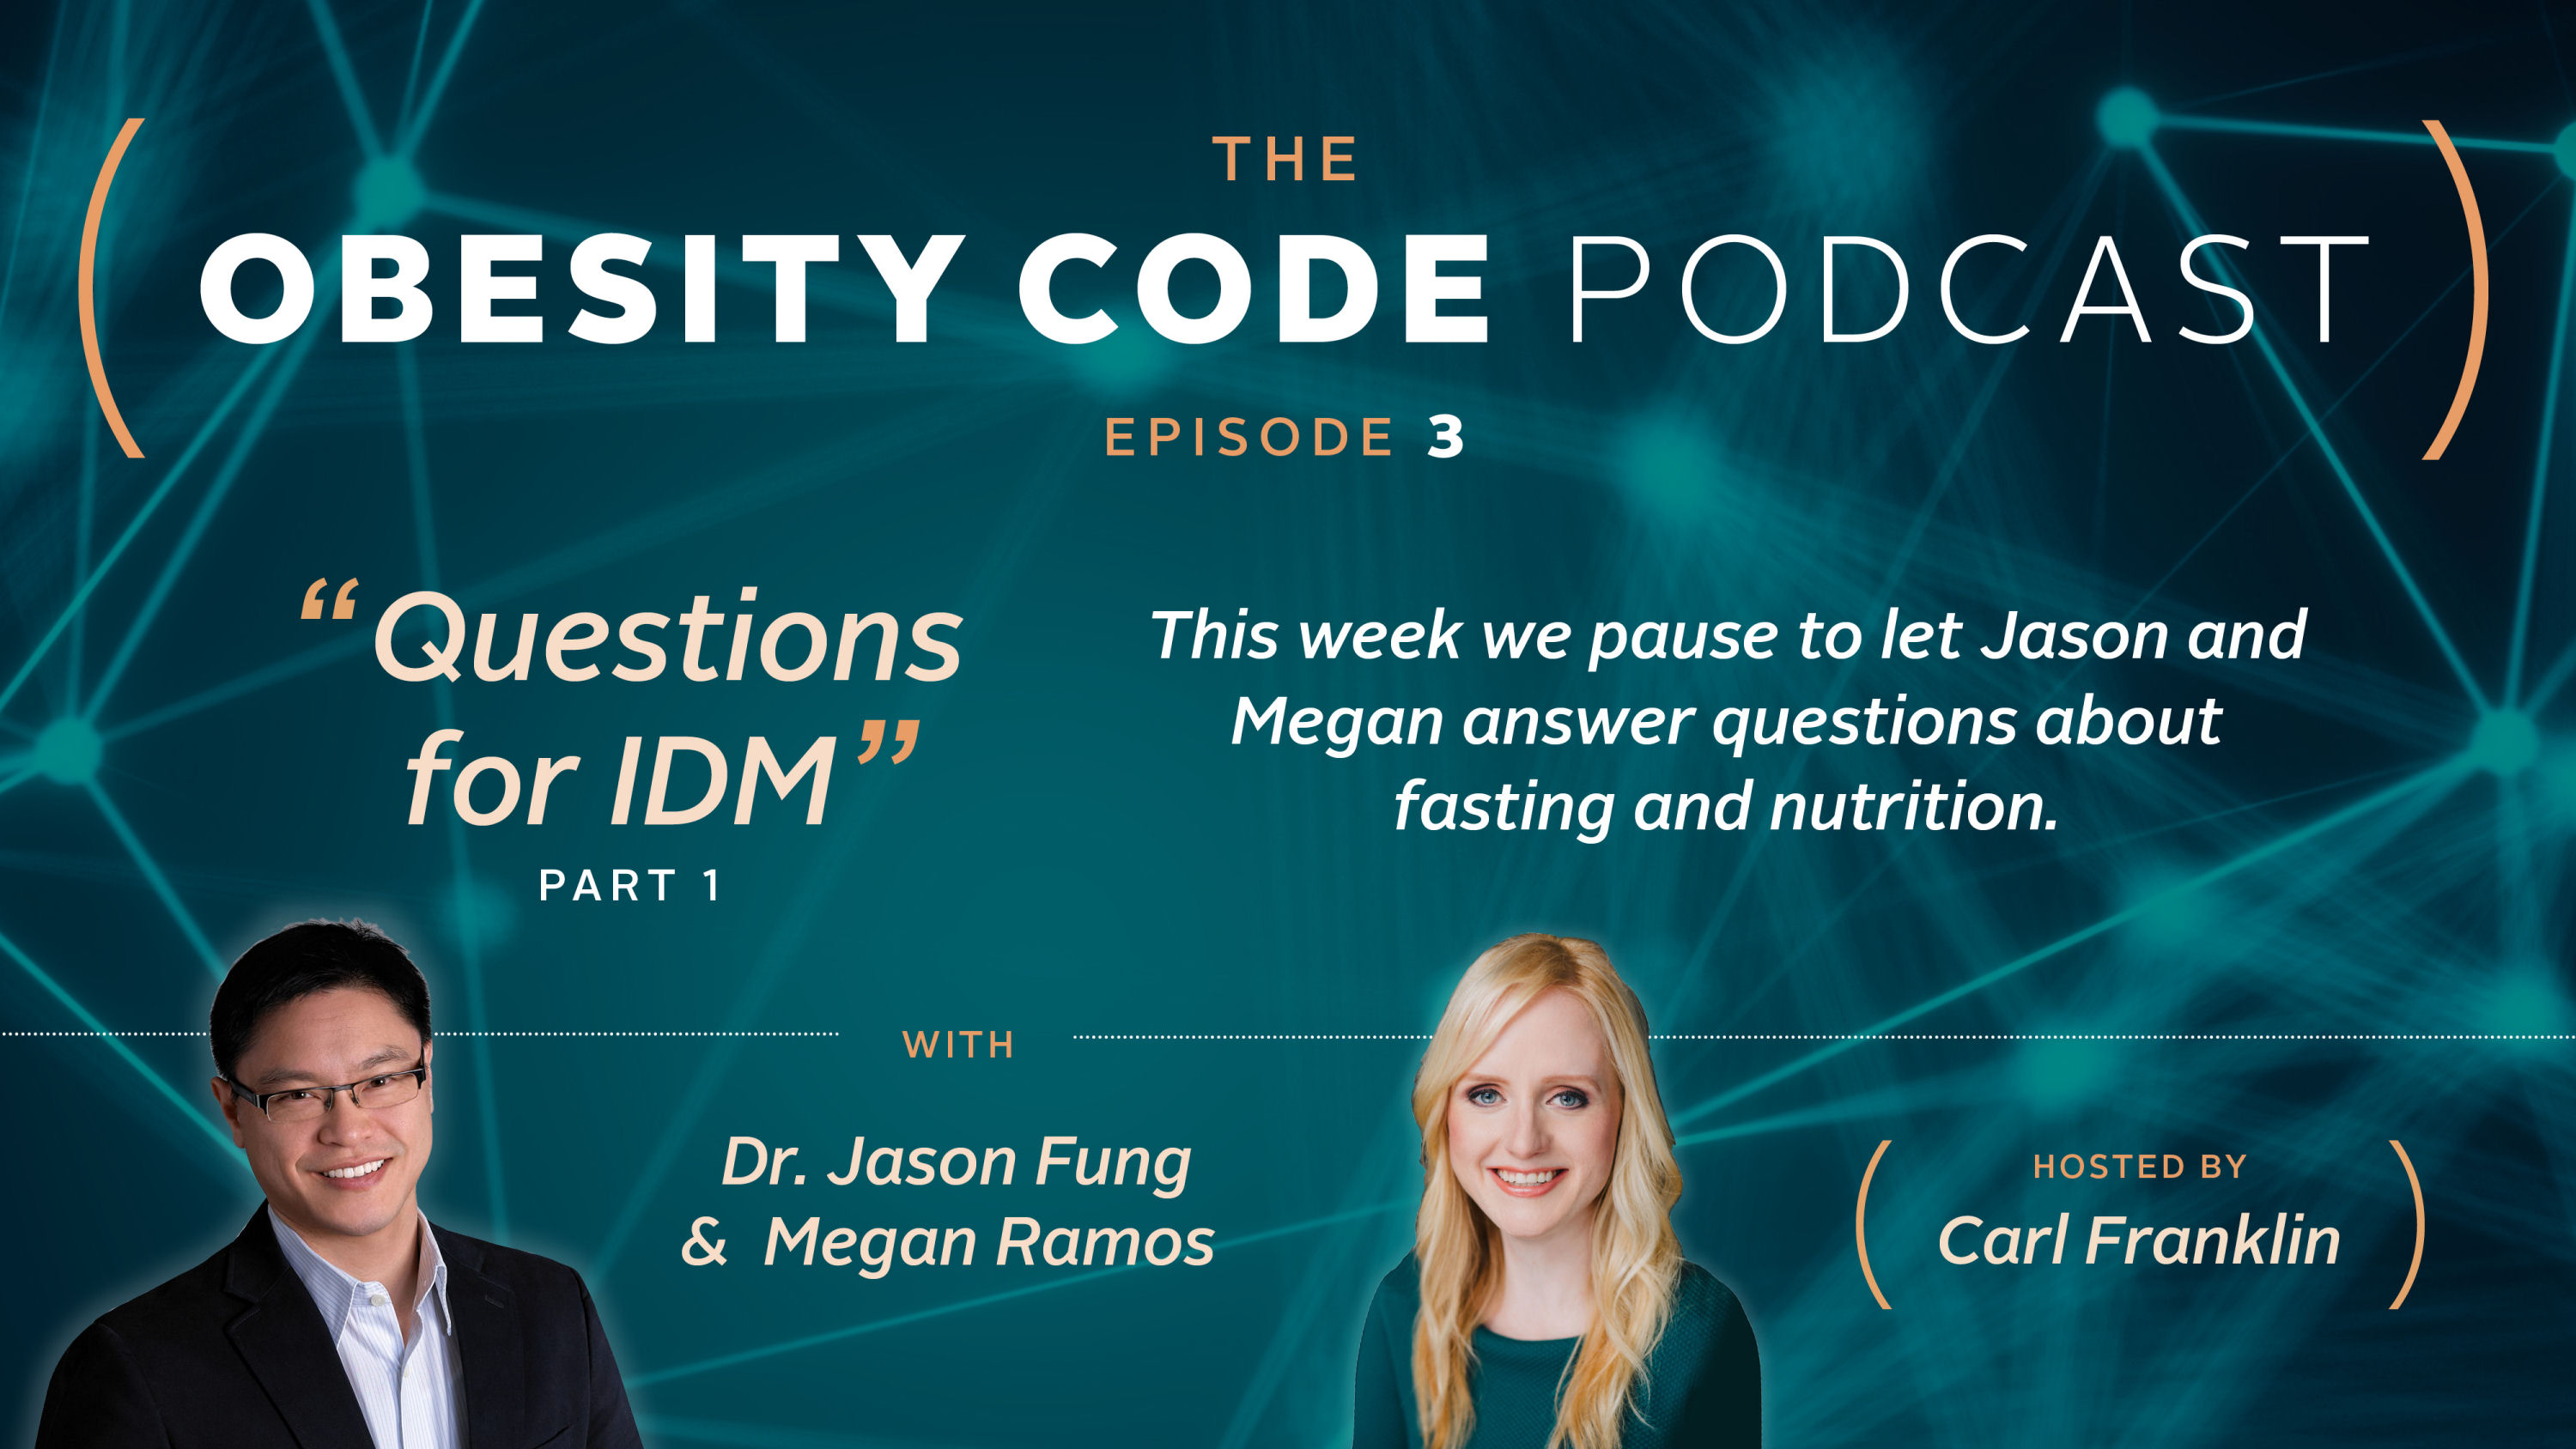 Podcasts The Obesity Code Podcast